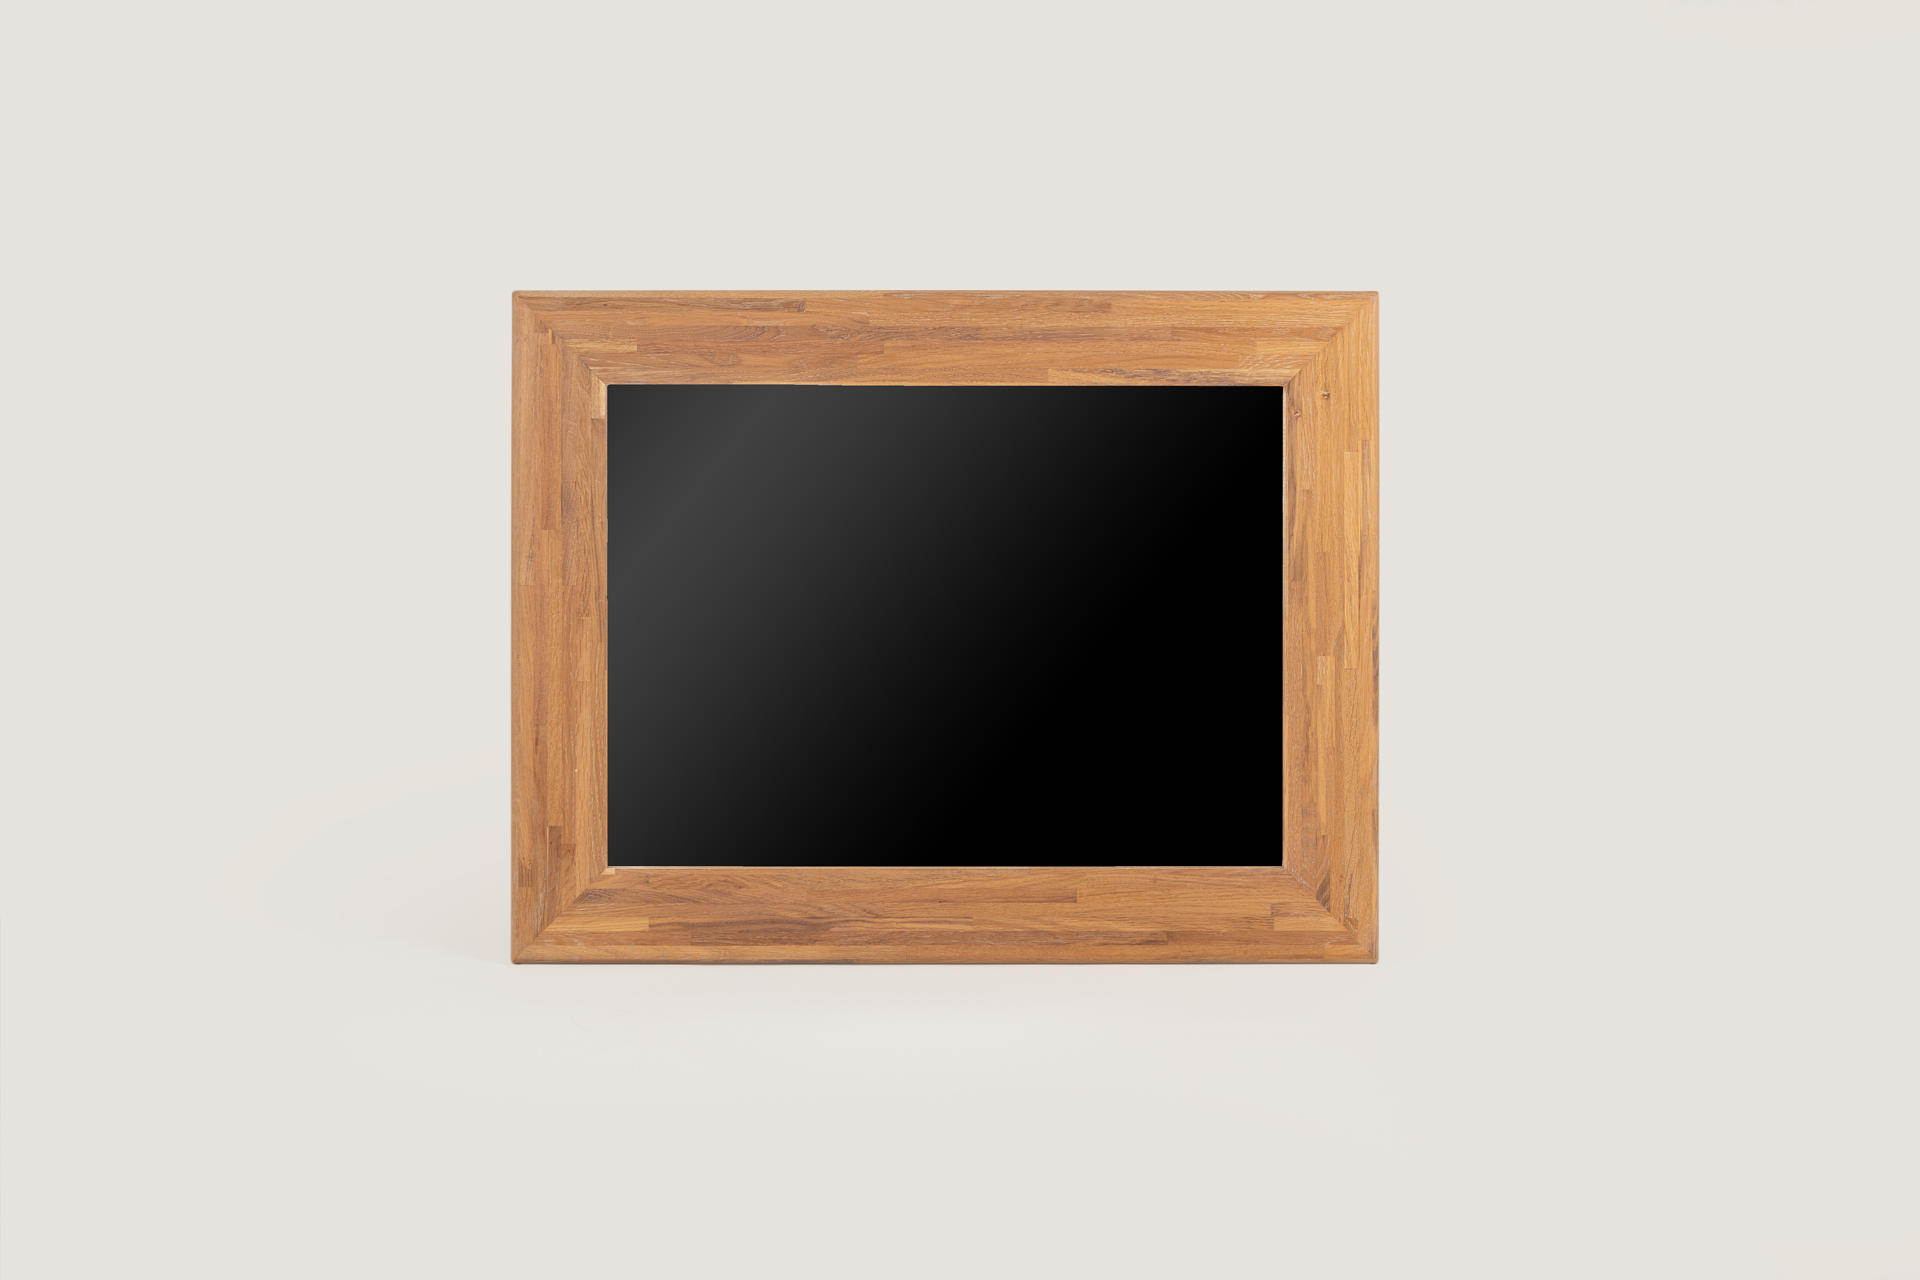 Mirrors big design mirrors wood mood design by milica for Miroir 70x170